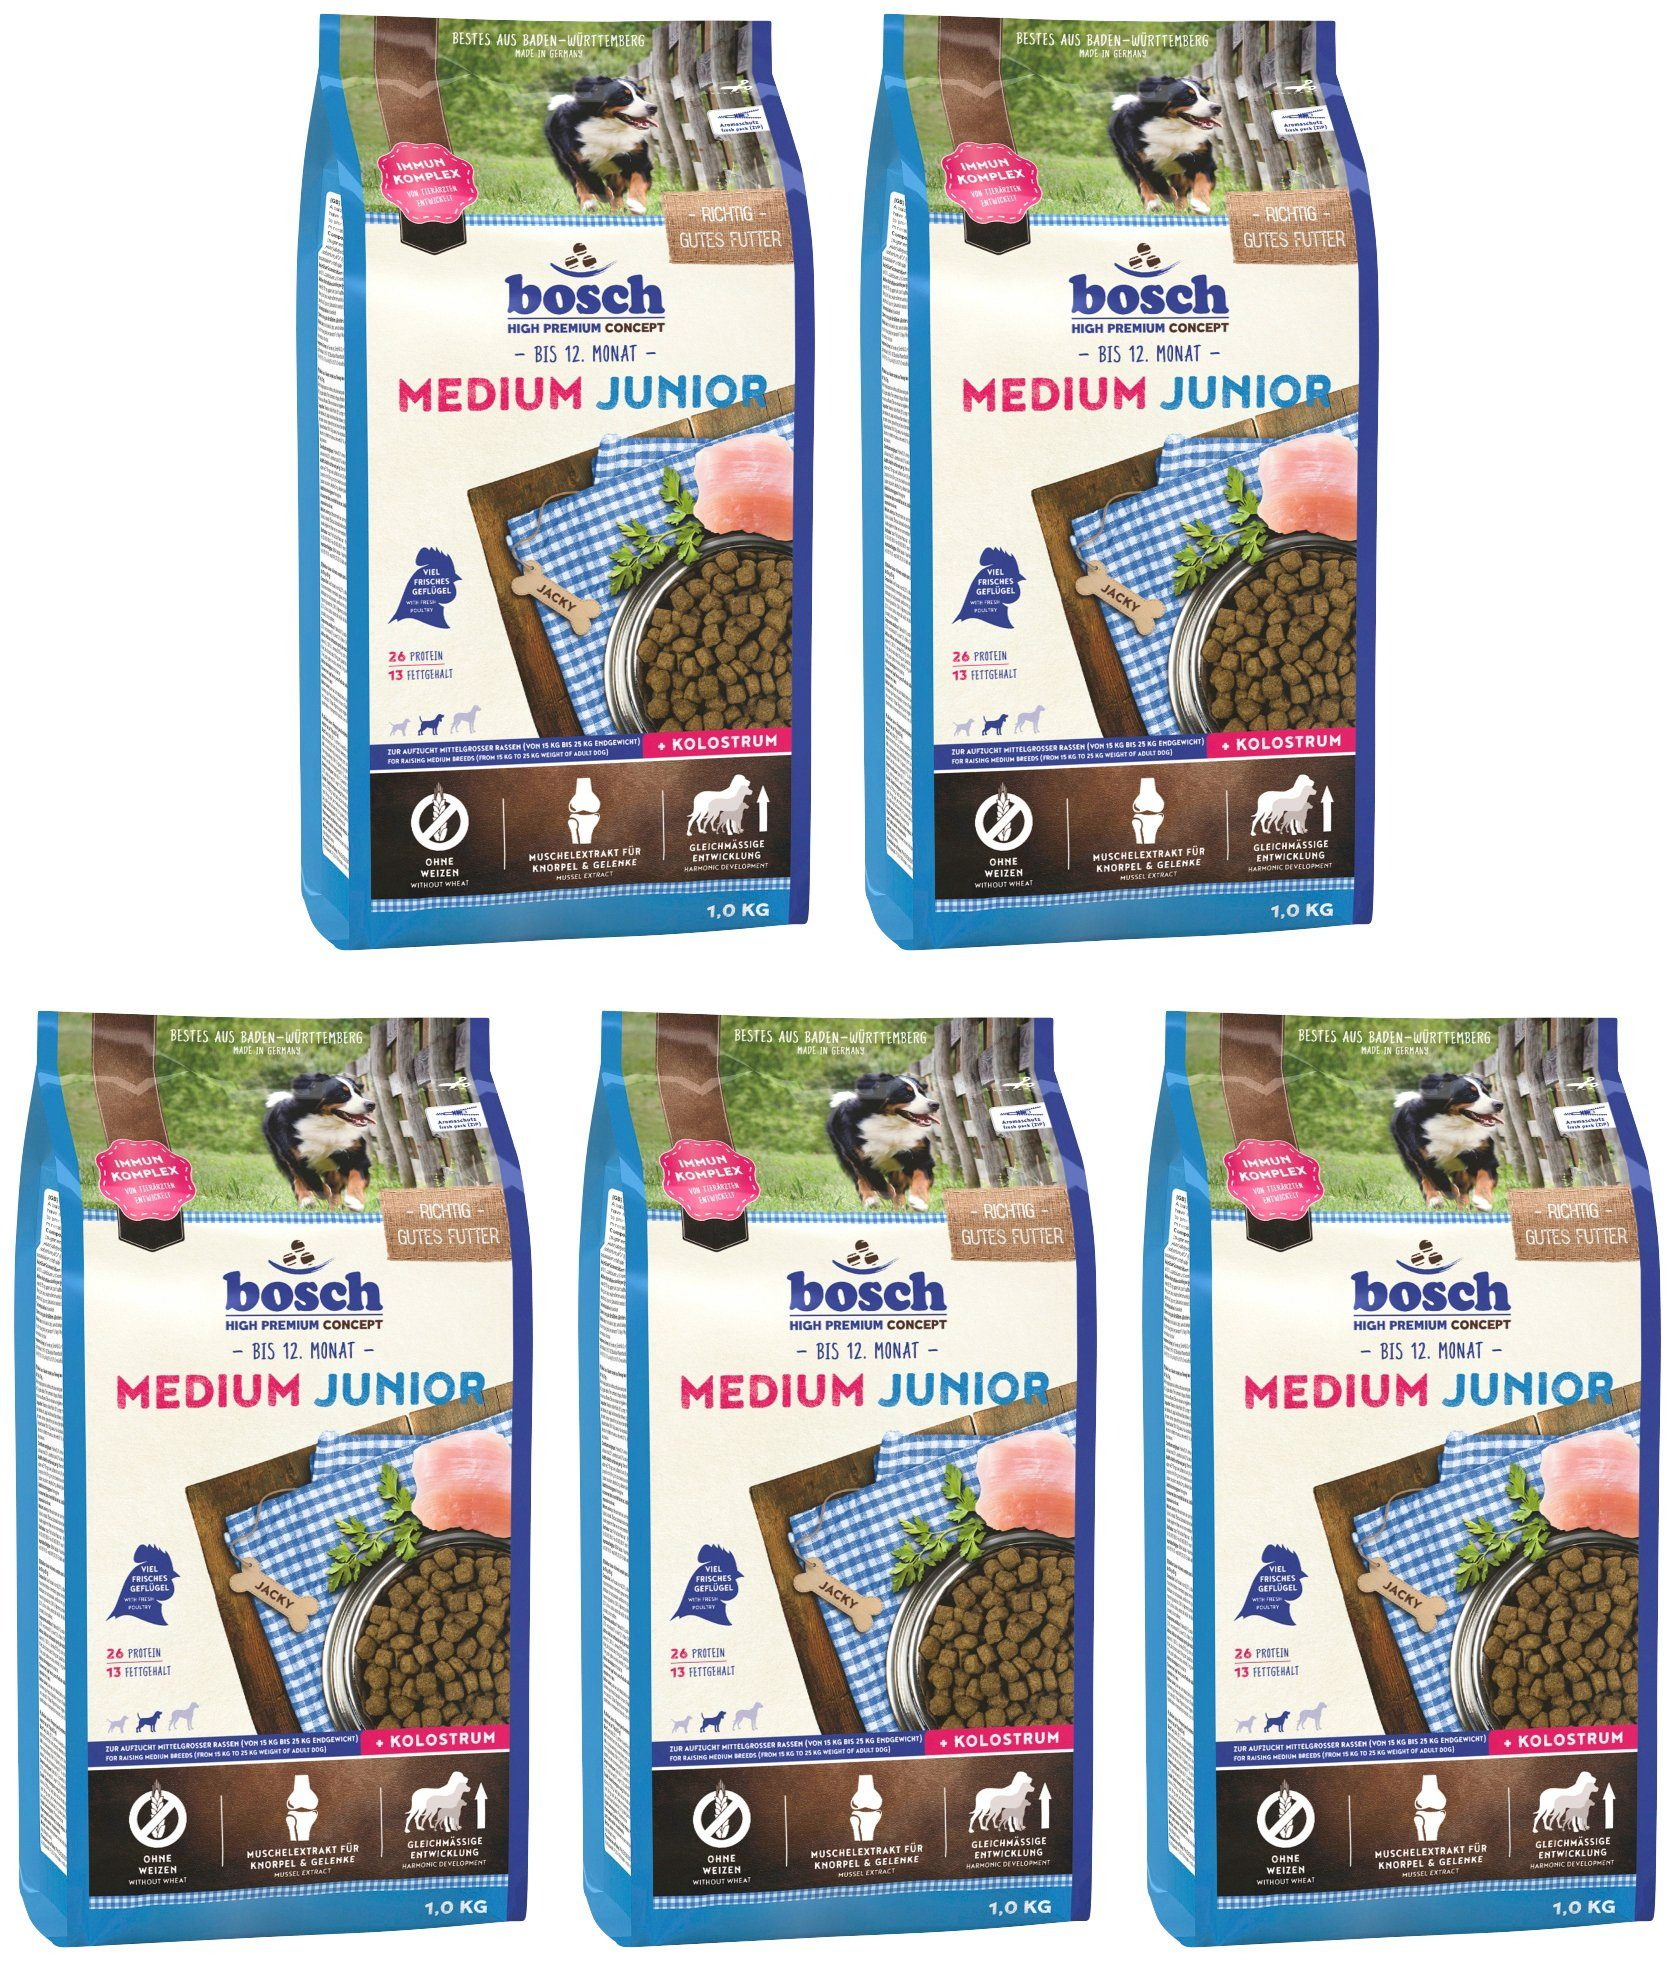 BOSCH PETFOOD Hundetrockenfutter »Medium Junior«, 5 Beutel á 1 kg